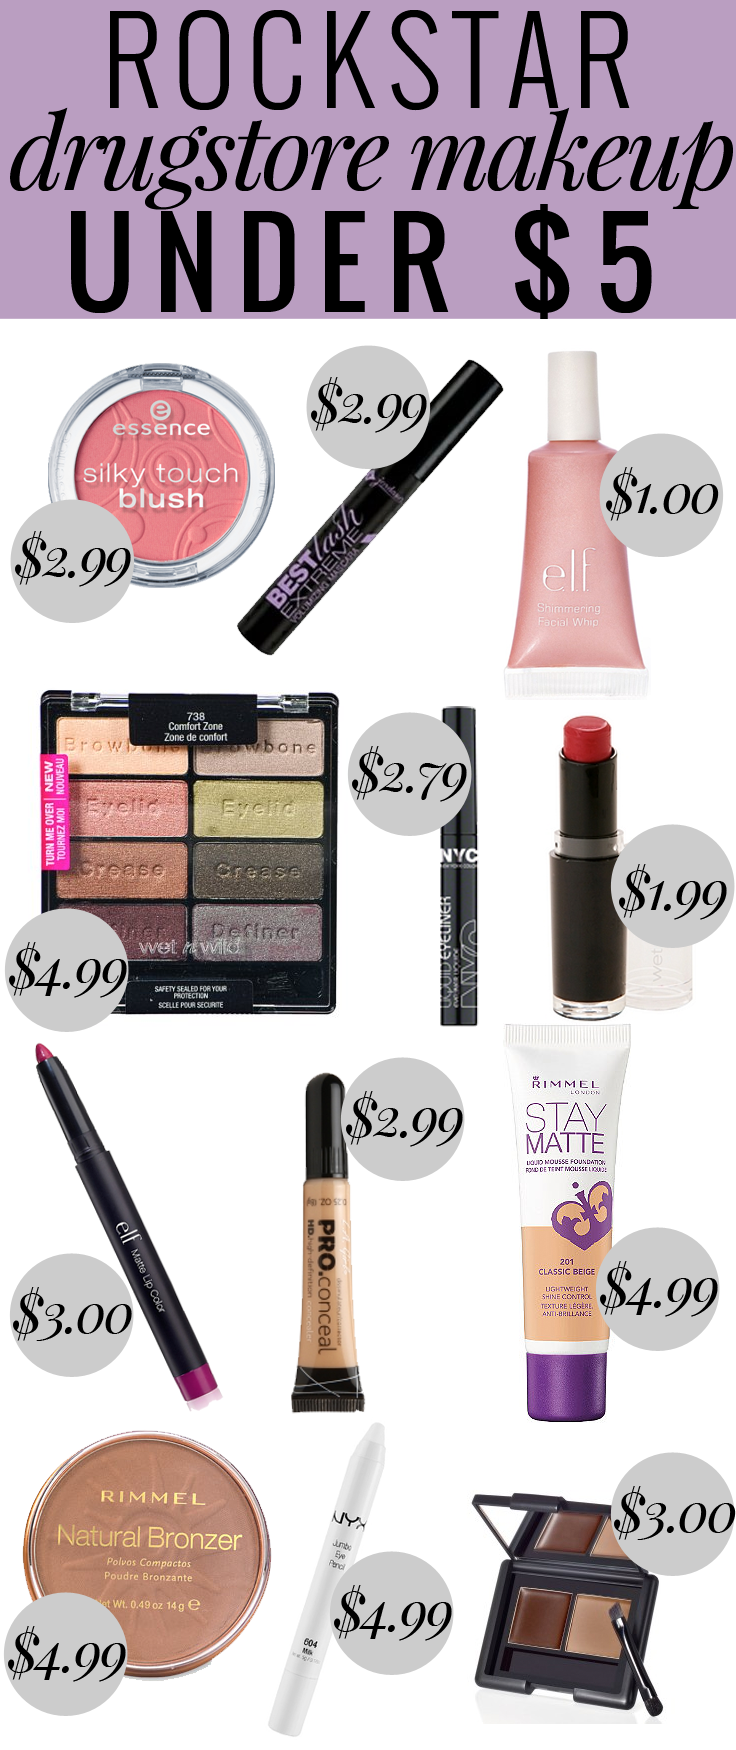 Rockstar Drugstore Makeup Under 5 Dollar makeup